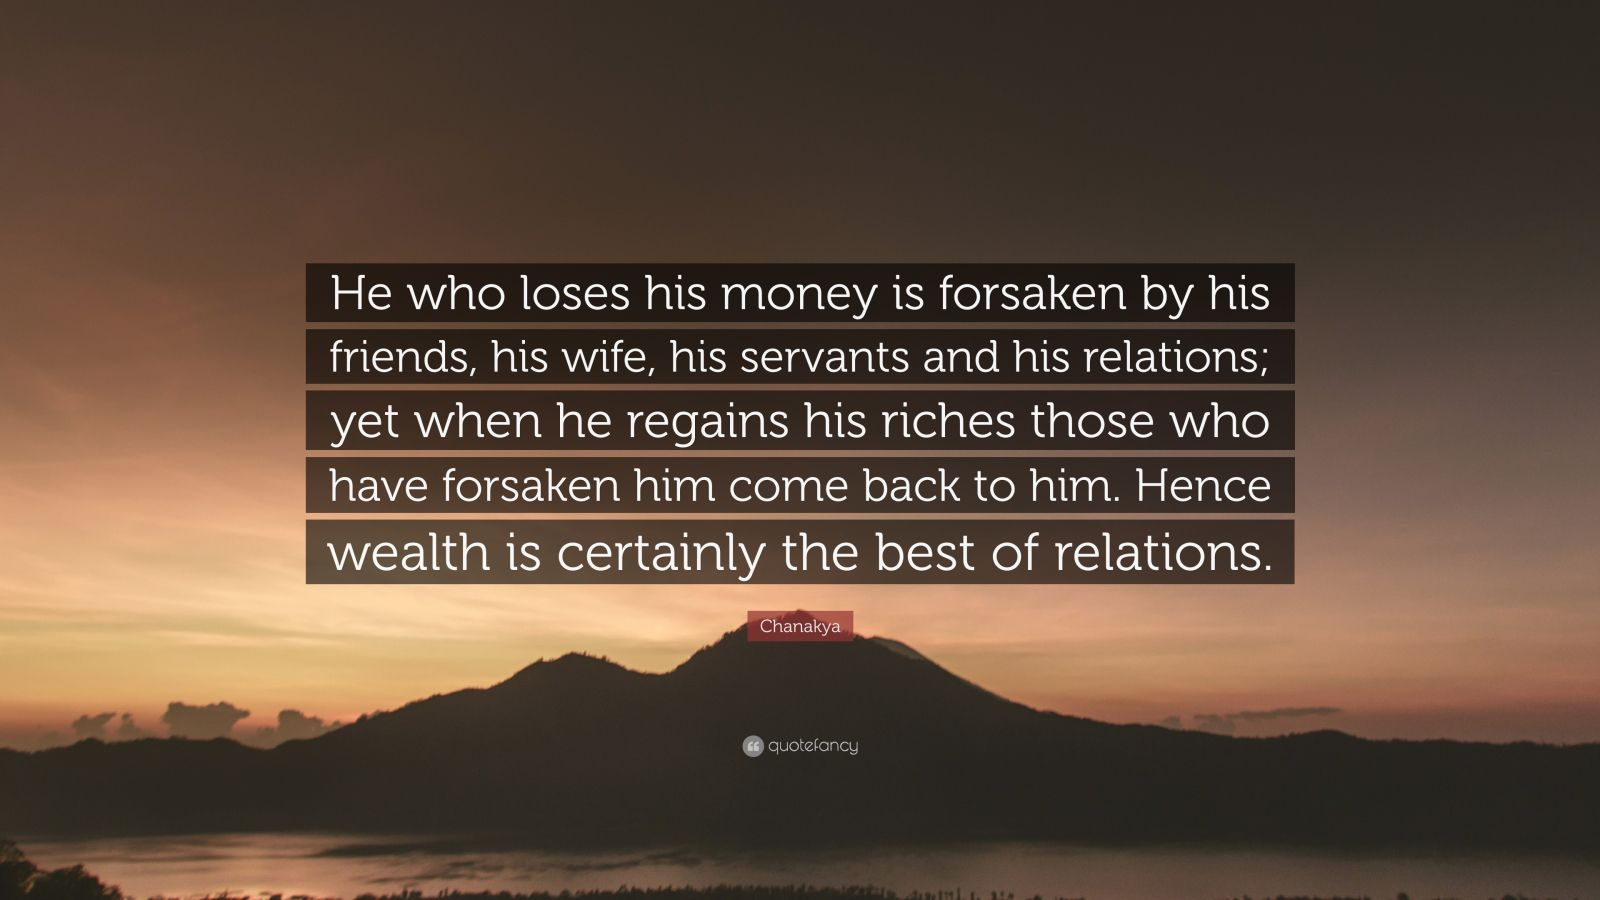 """Chanakya Quote: """"He who loses his money is forsaken by his friends, his wife, his servants and his relations; yet when he regains his riches those who have forsaken him come back to him. Hence wealth is certainly the best of relations."""""""